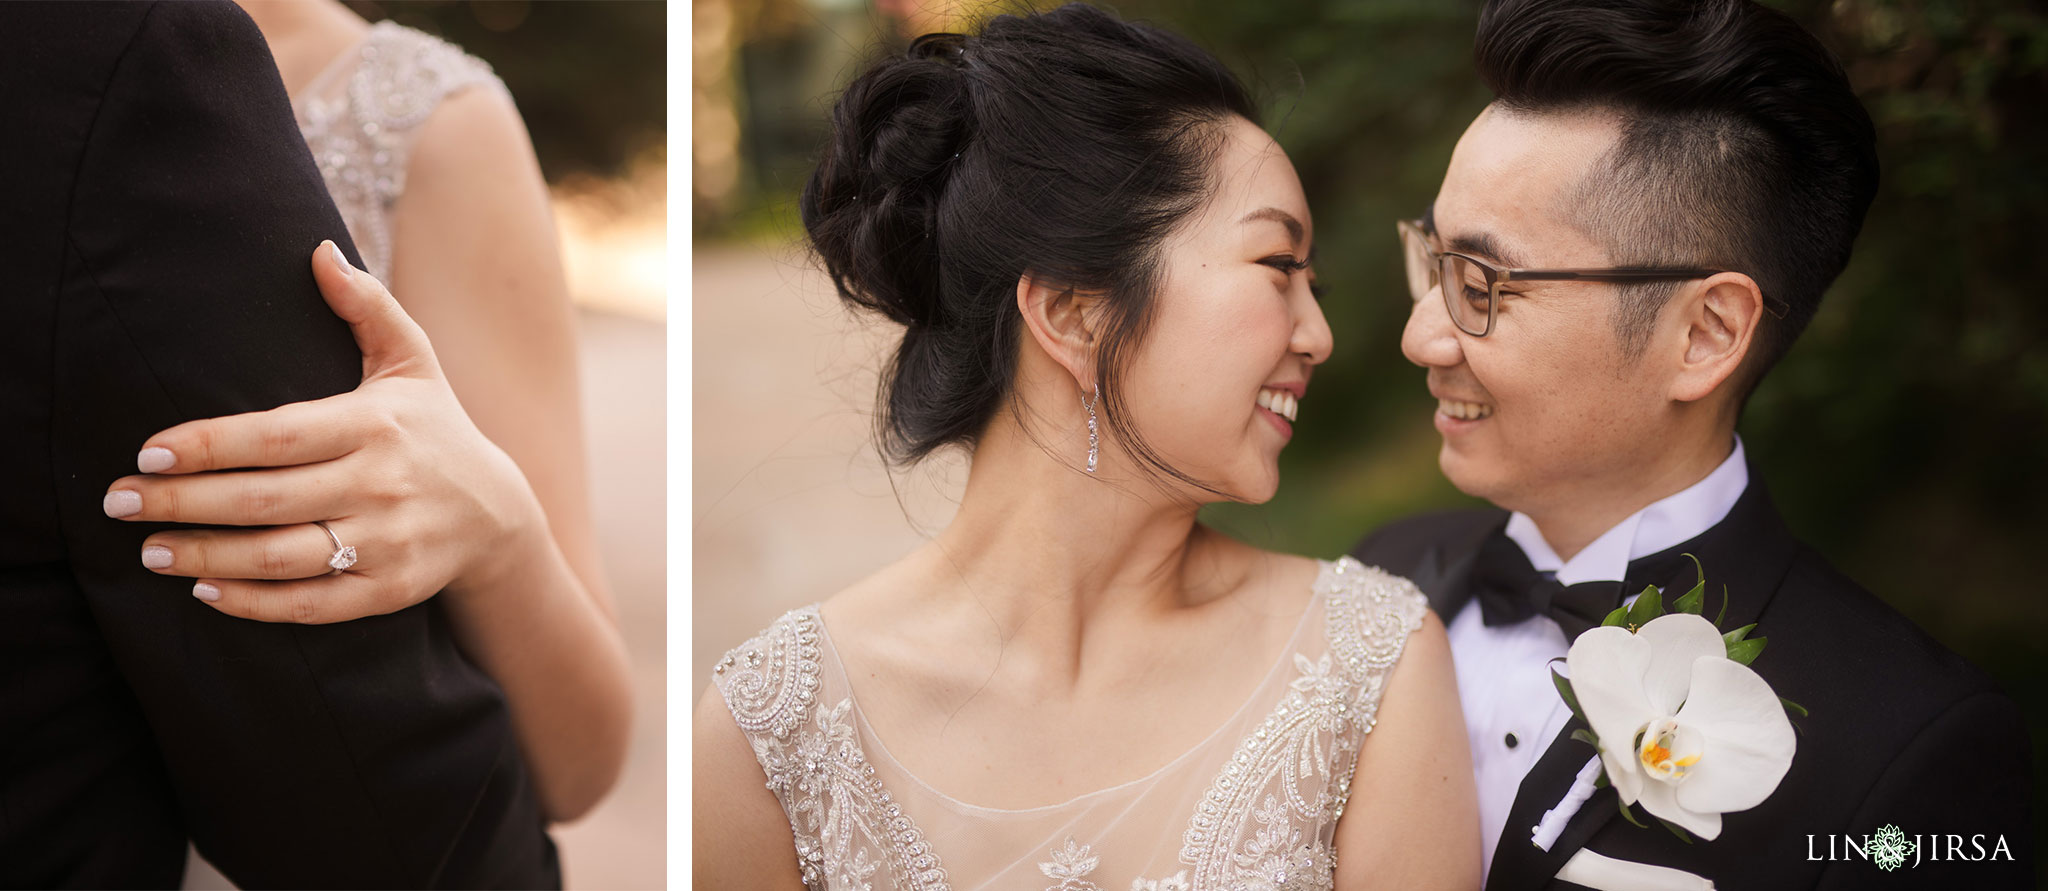 13 segerstrom center for the arts costa mesa wedding photography 1